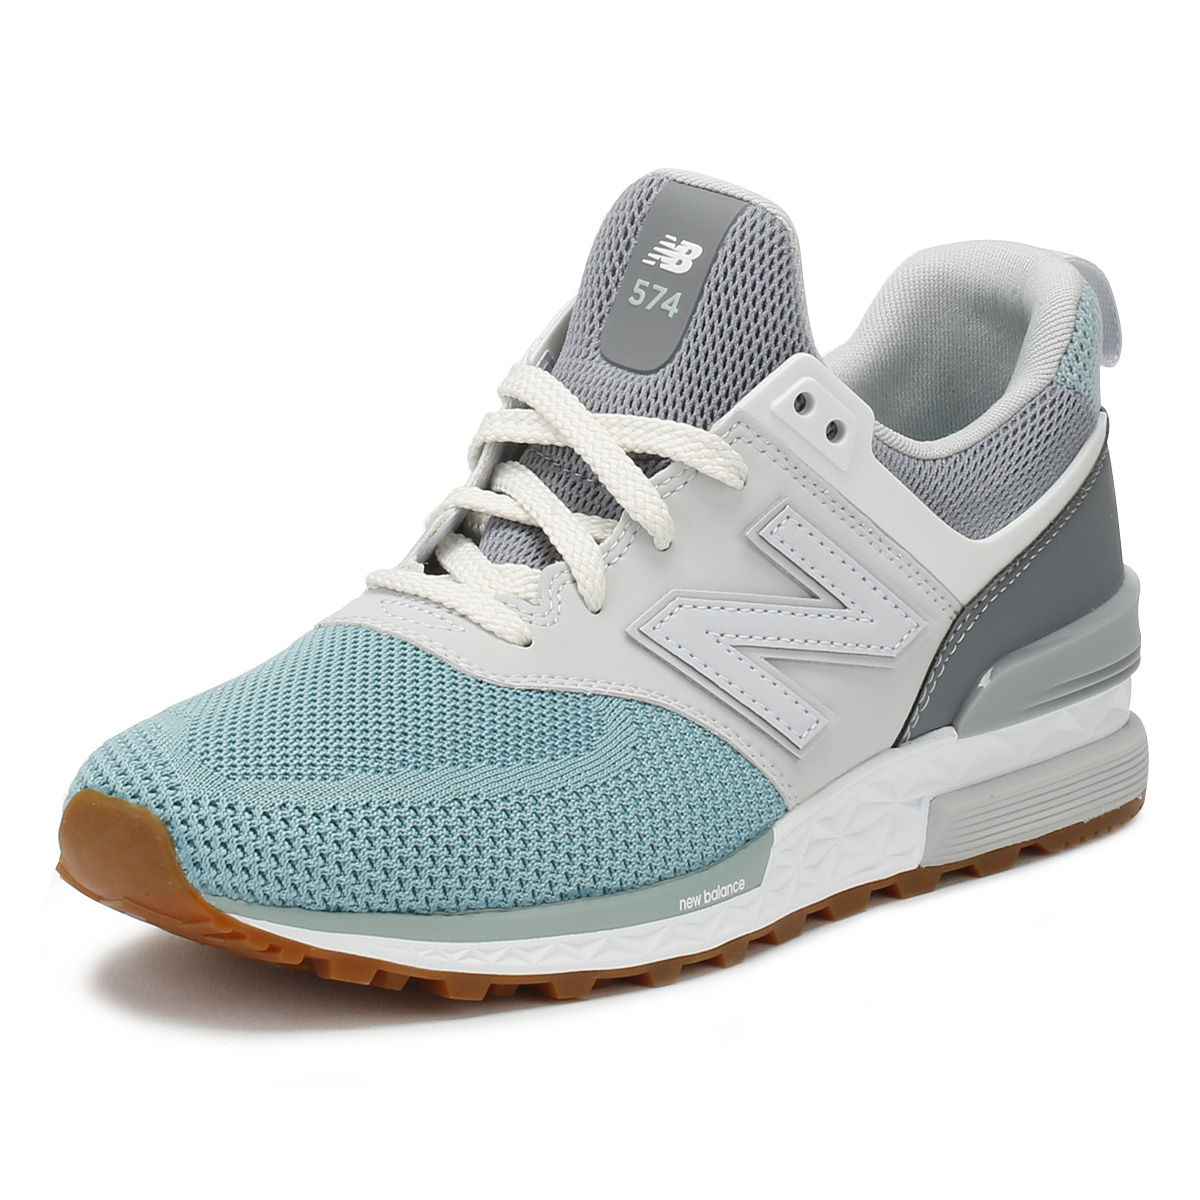 3cbddcd656 Details about New Balance Mens Trainers Grey   Blue 574 Sport Lace Up  Casual Running Shoes